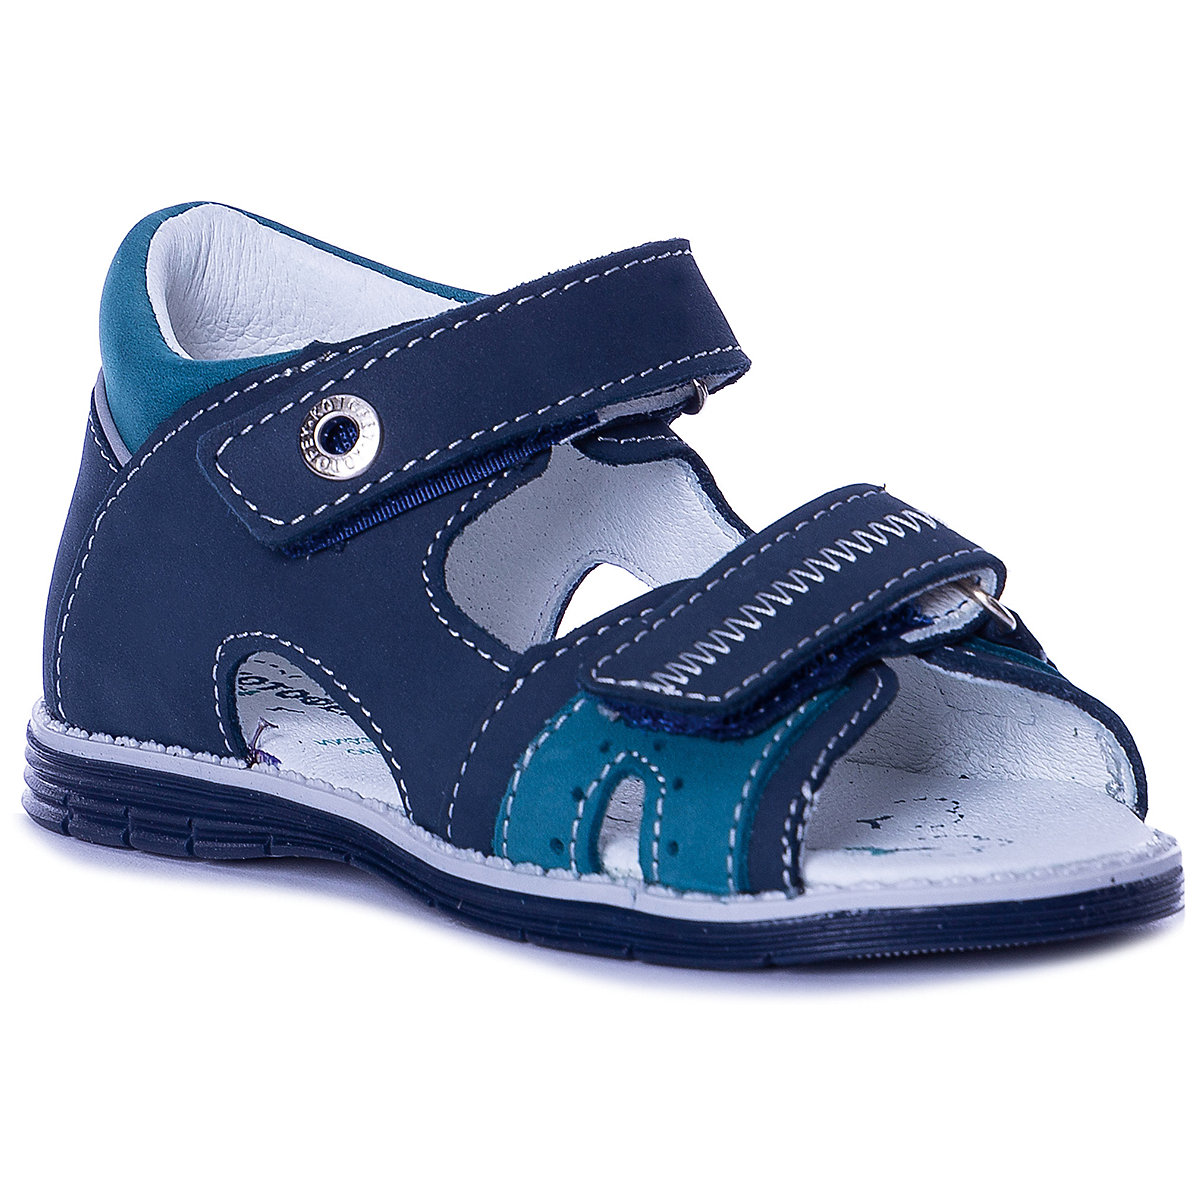 KOTOFEY Sandals 11319812 children's shoes comfortable and light girls and boys sandals adidas af3921 sports and entertainment for boys